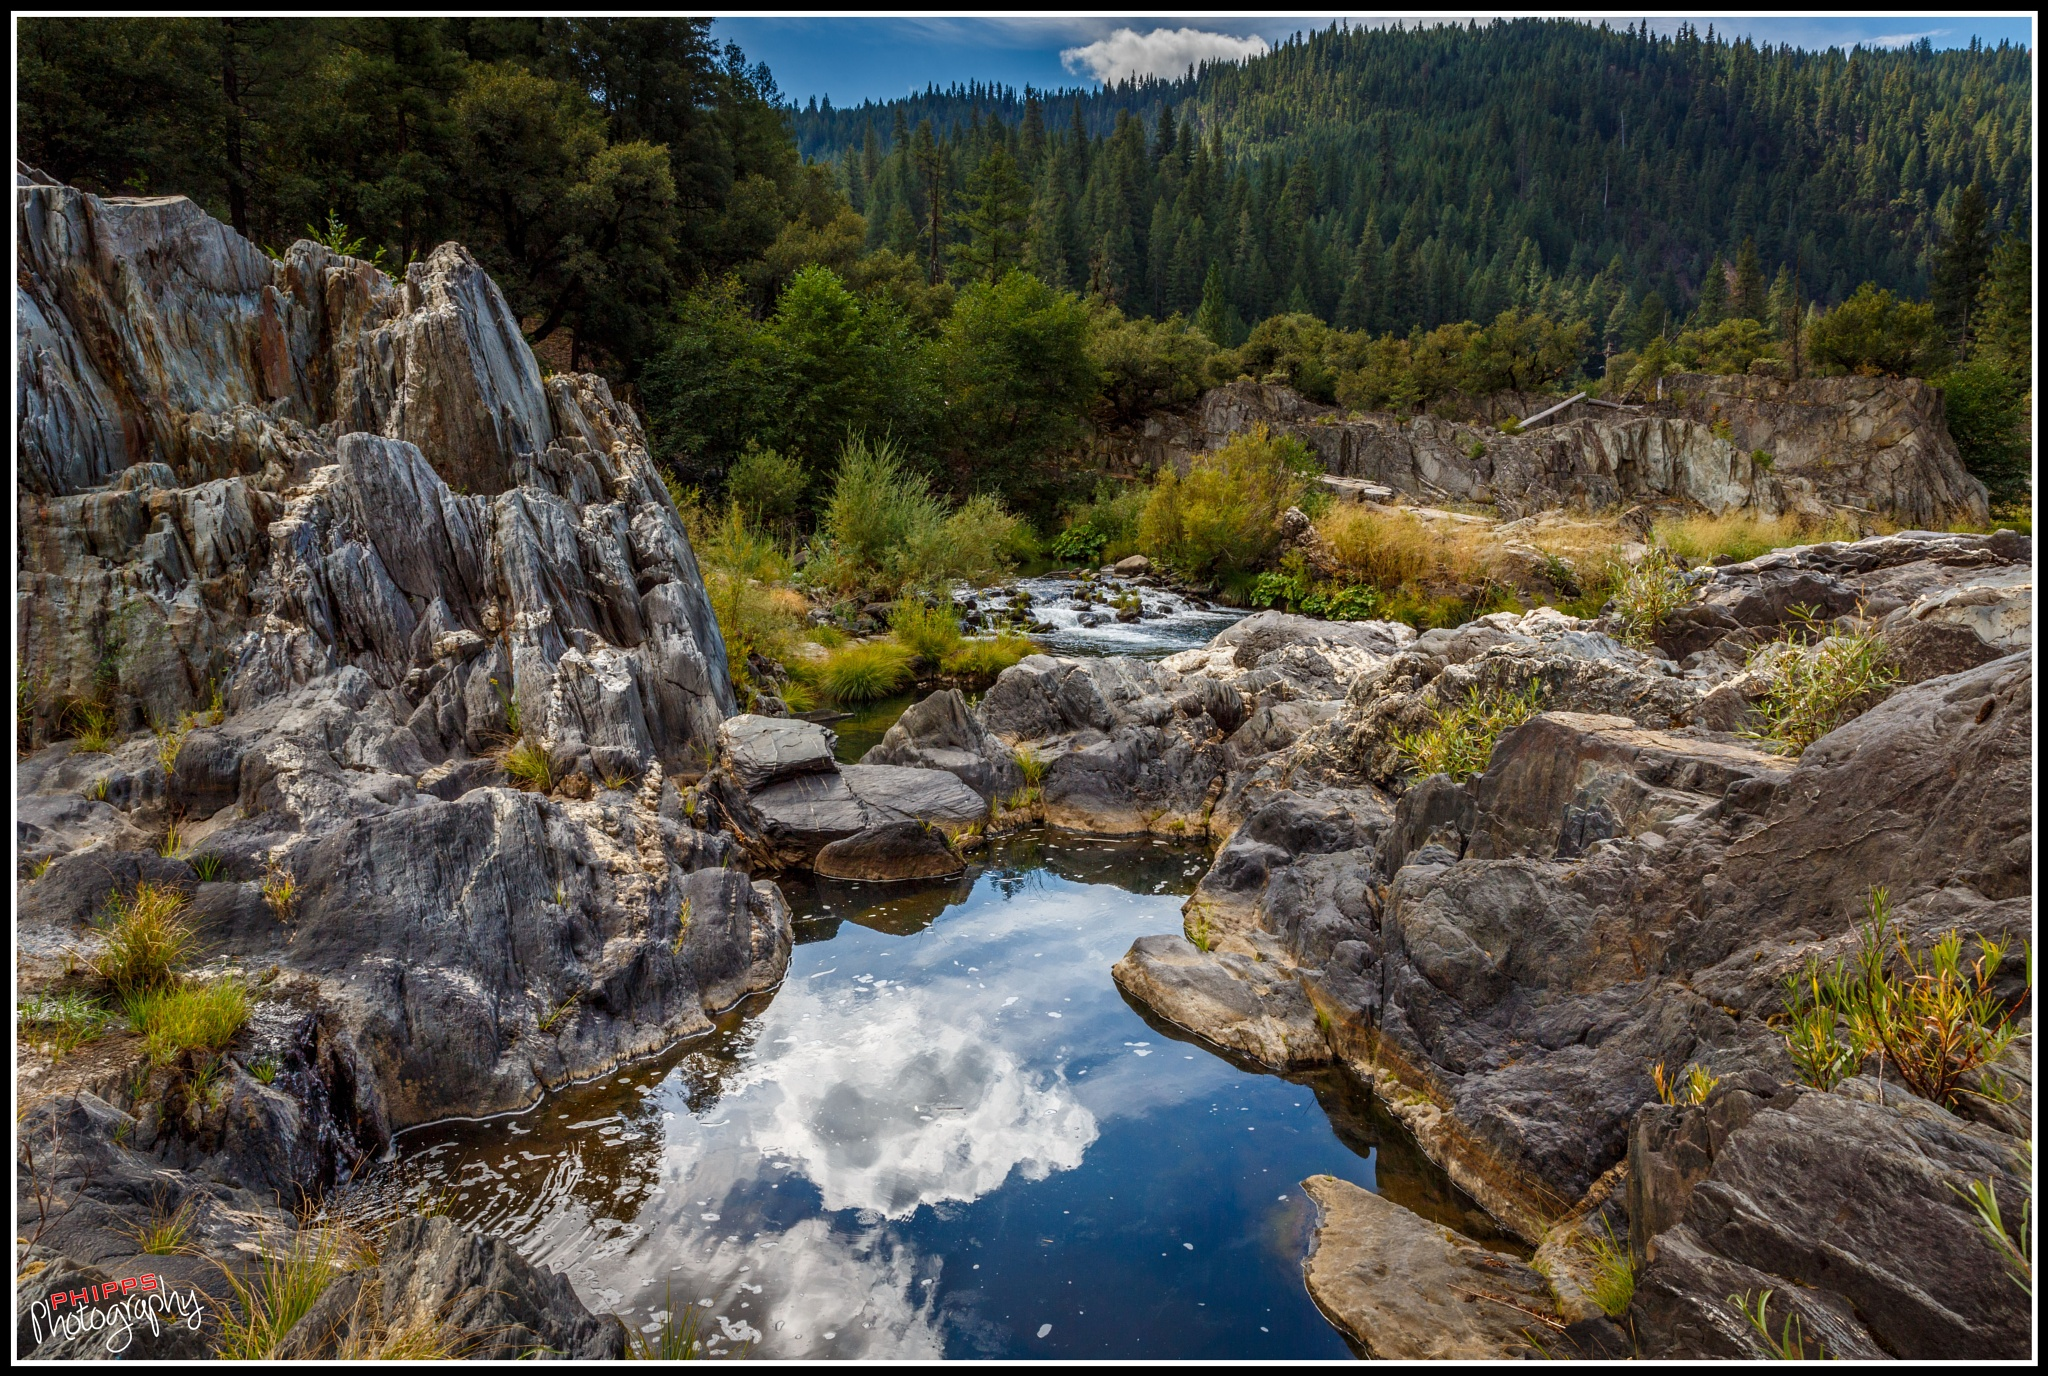 Cloud Reflection, Feather River, California by PhippsPhotography